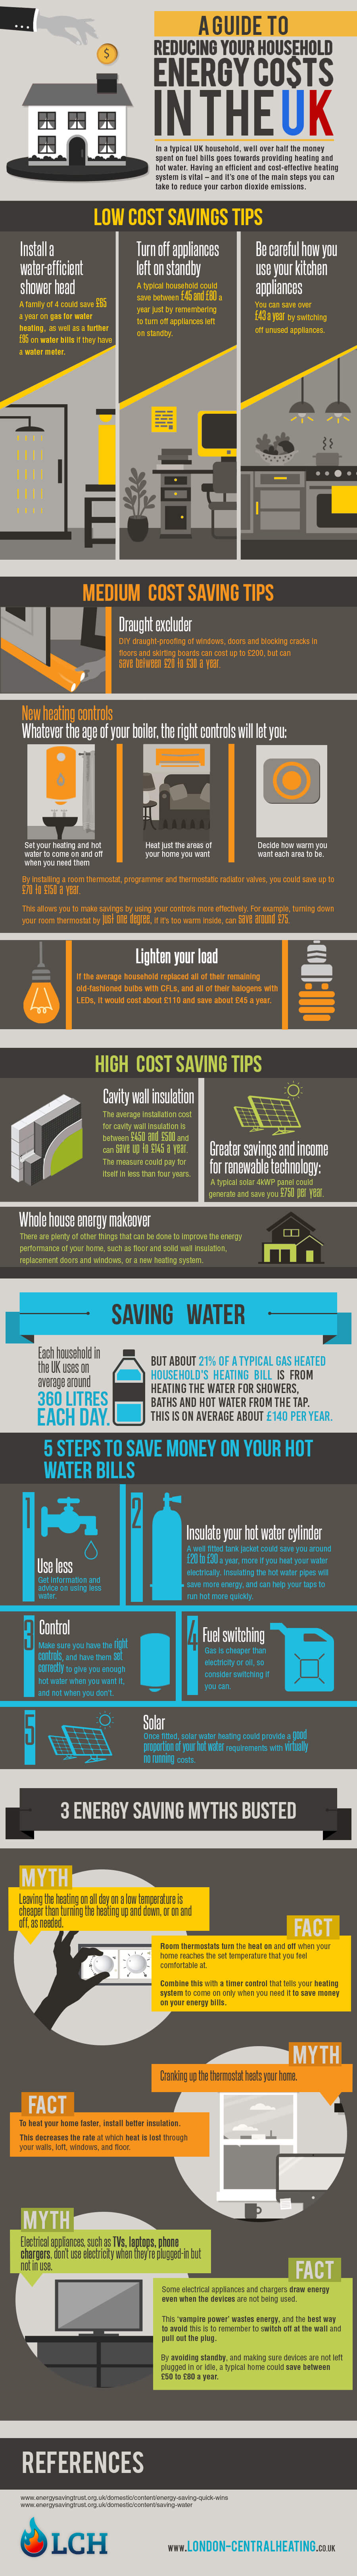 Guide-to-reduce-energy-cost-in-UK-Infographic